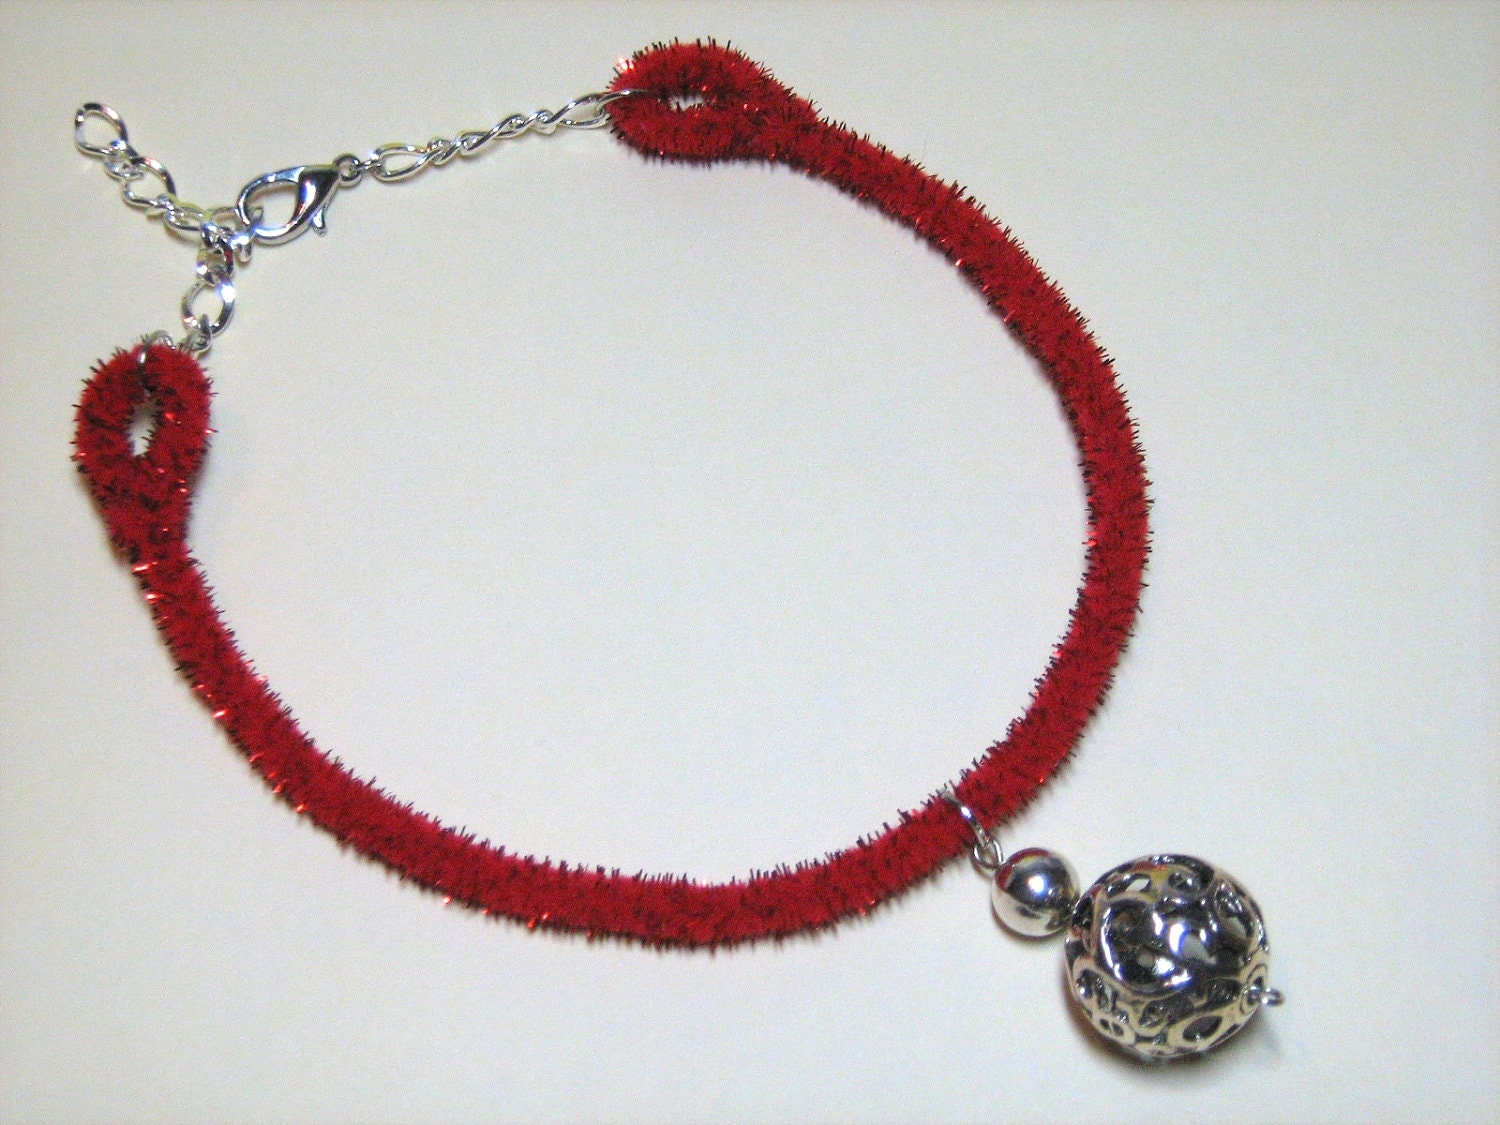 Pet Necklace: Filigree Sphere Pendant on Glittery Red Chenille Stem